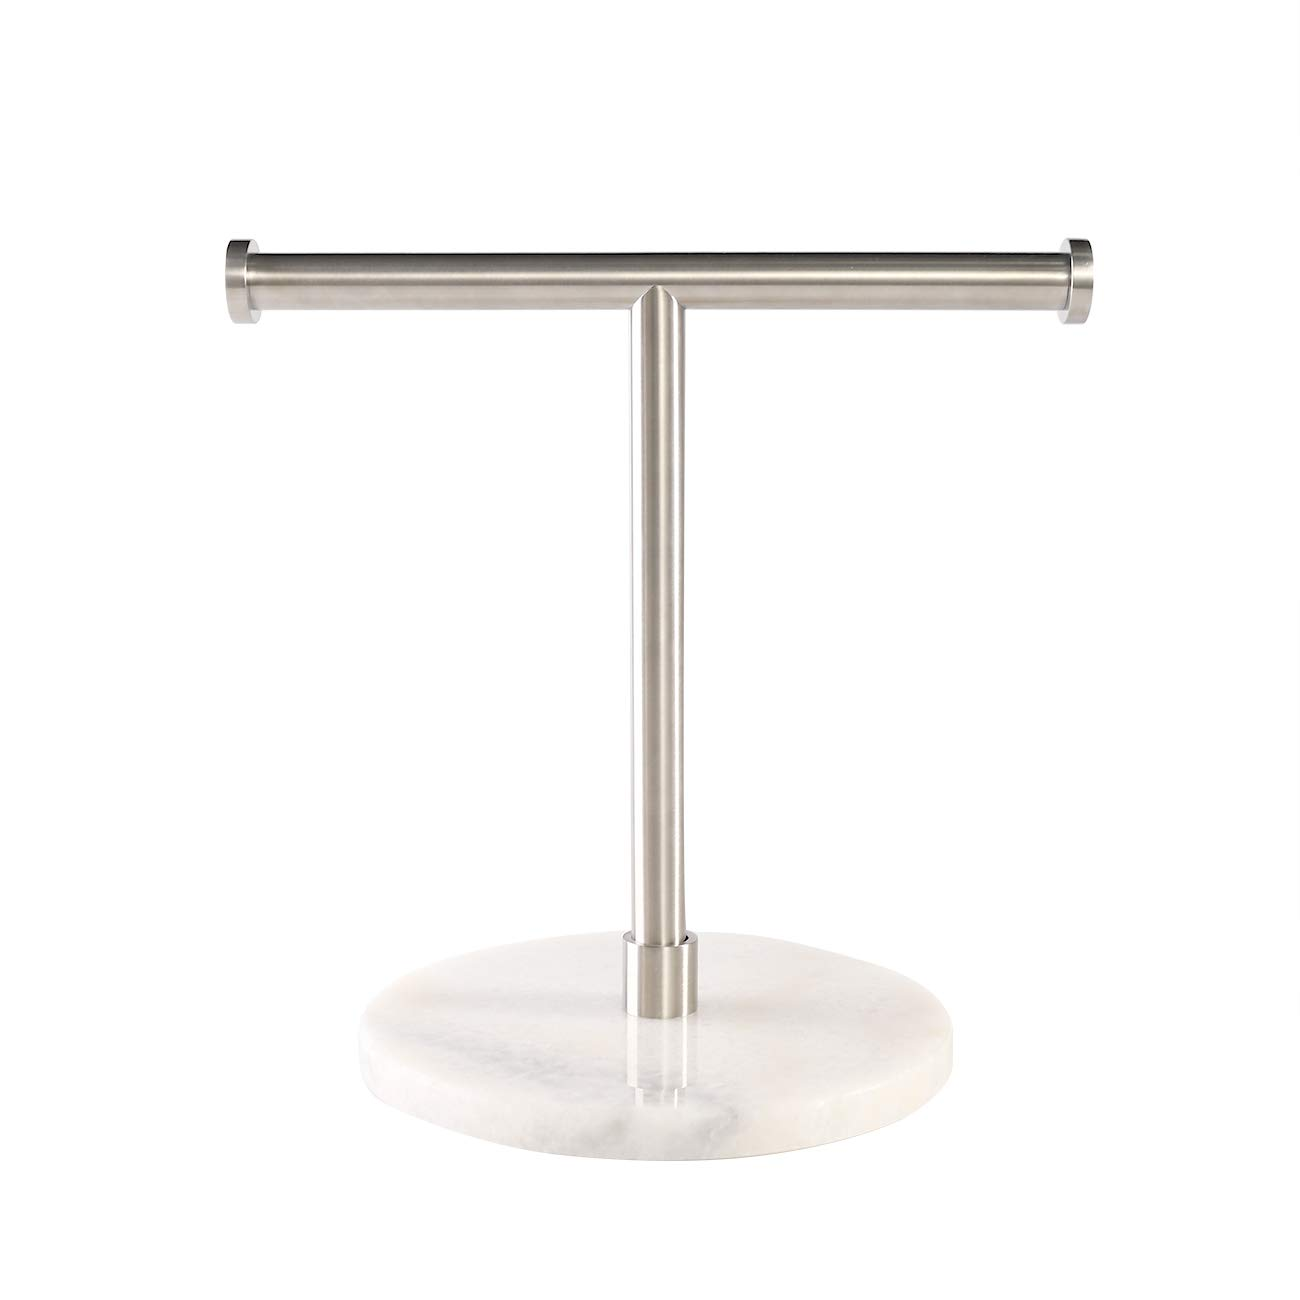 KES Towel Rack with Marble Round Base T-Shape Hand Towel Holder Stand SUS304 Stainless Steel Standing Tree Rack for Bathroom Vanity Countertop Brushed Finish, BTH205S2-2 by KES